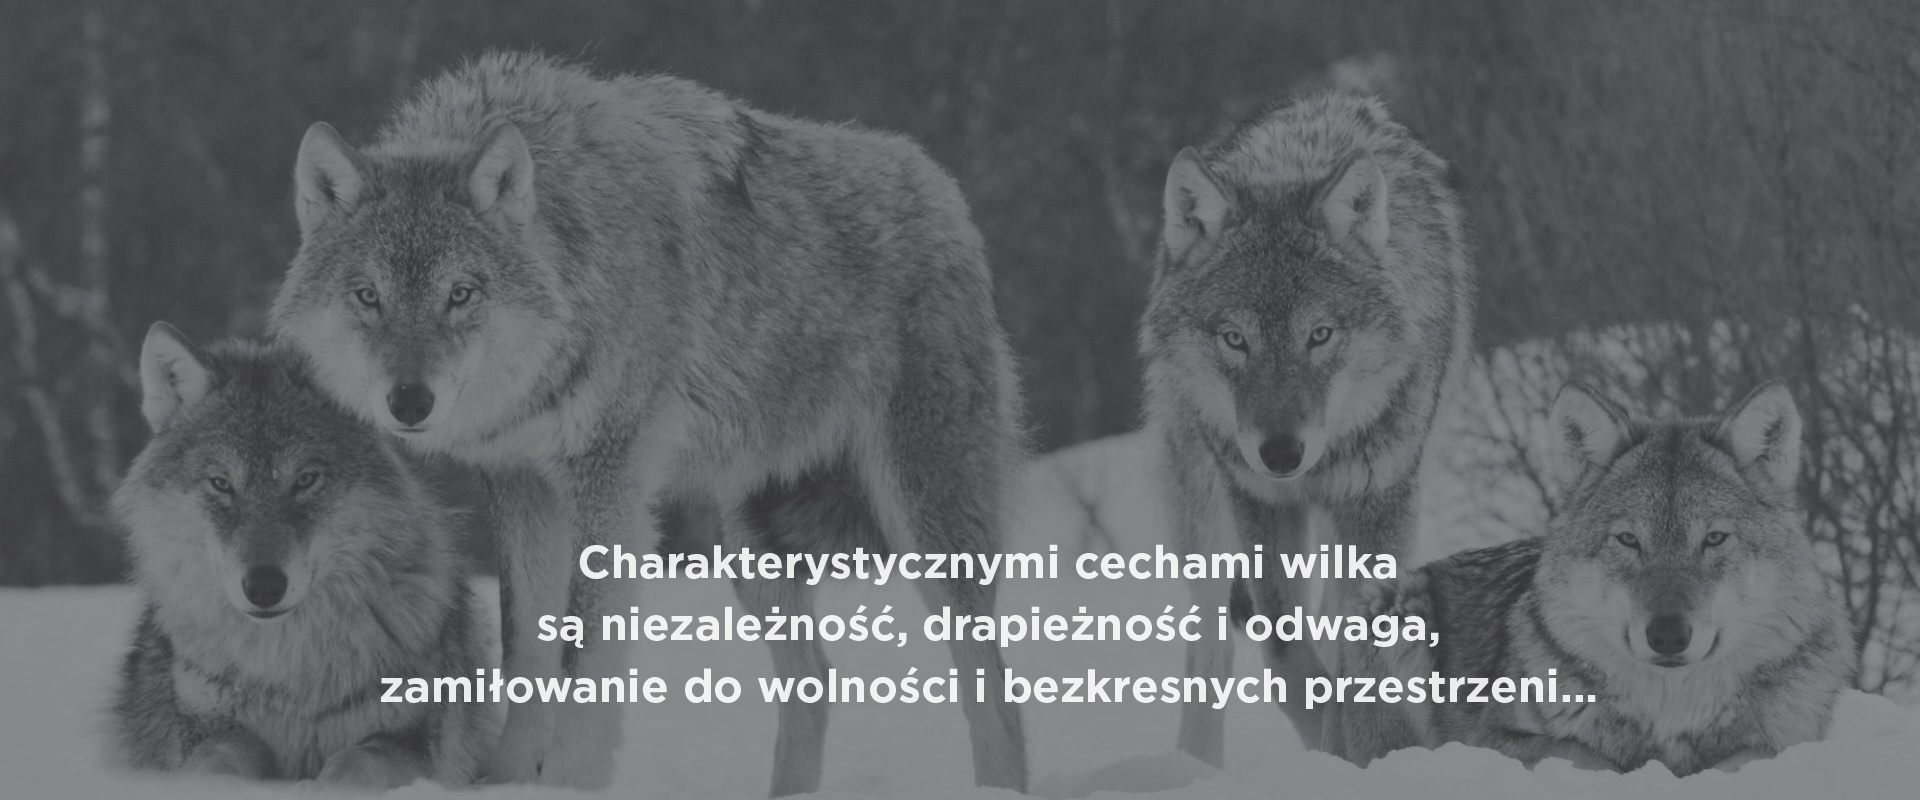 //greywolfgroup.pl/wp-content/uploads/2016/09/Wilki_1_KOREKTA.jpg